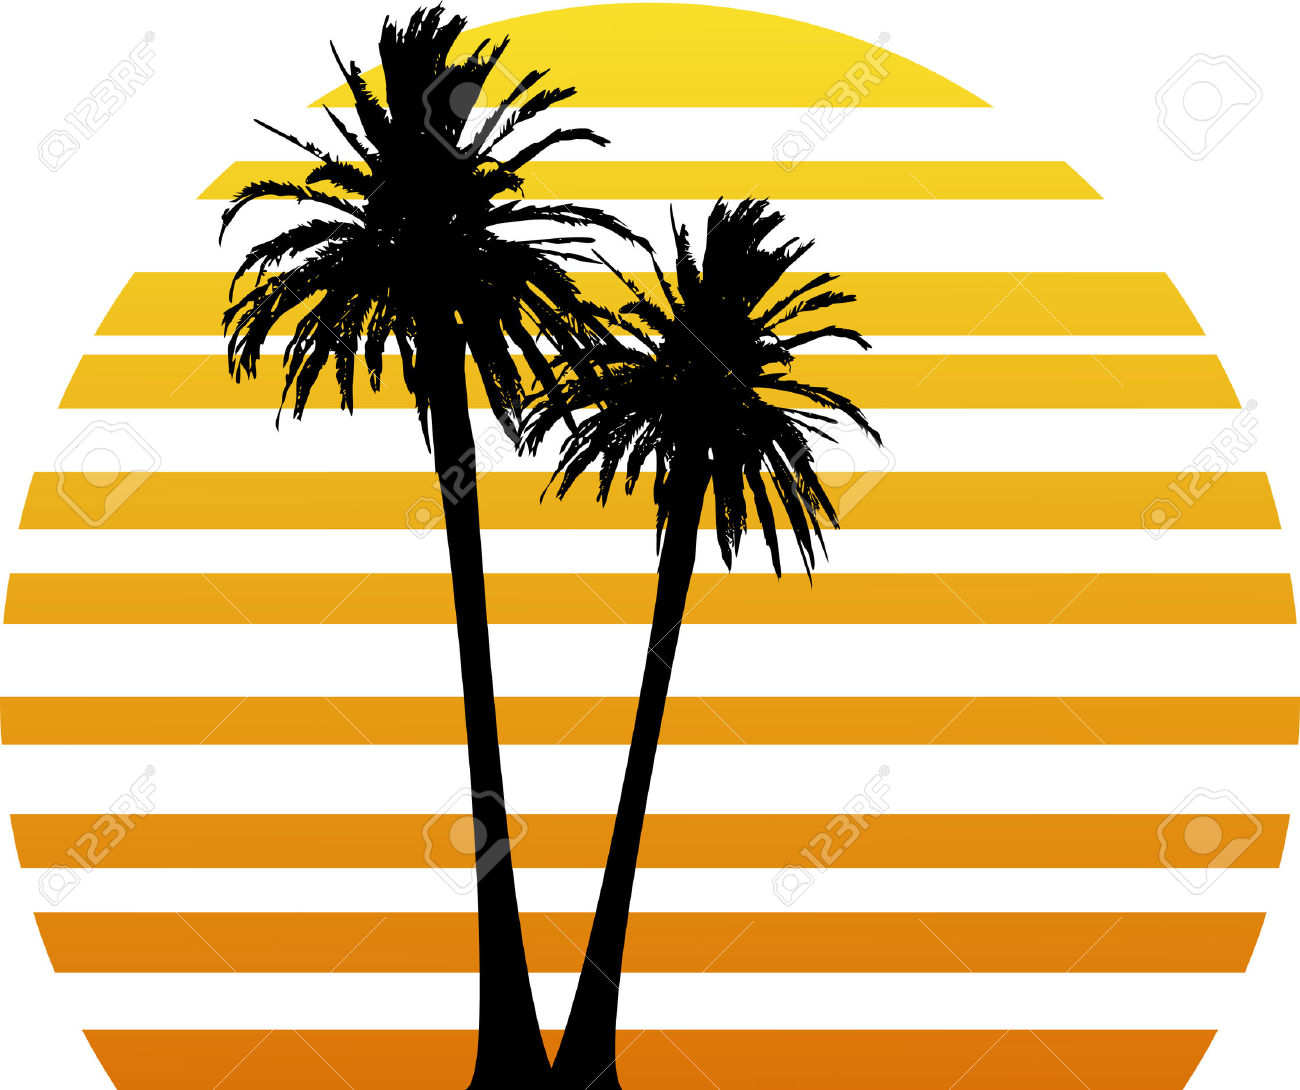 1300x1090 Palm Tree Sunset Clipart 0071 0803 2514 4326 Palm Trees On